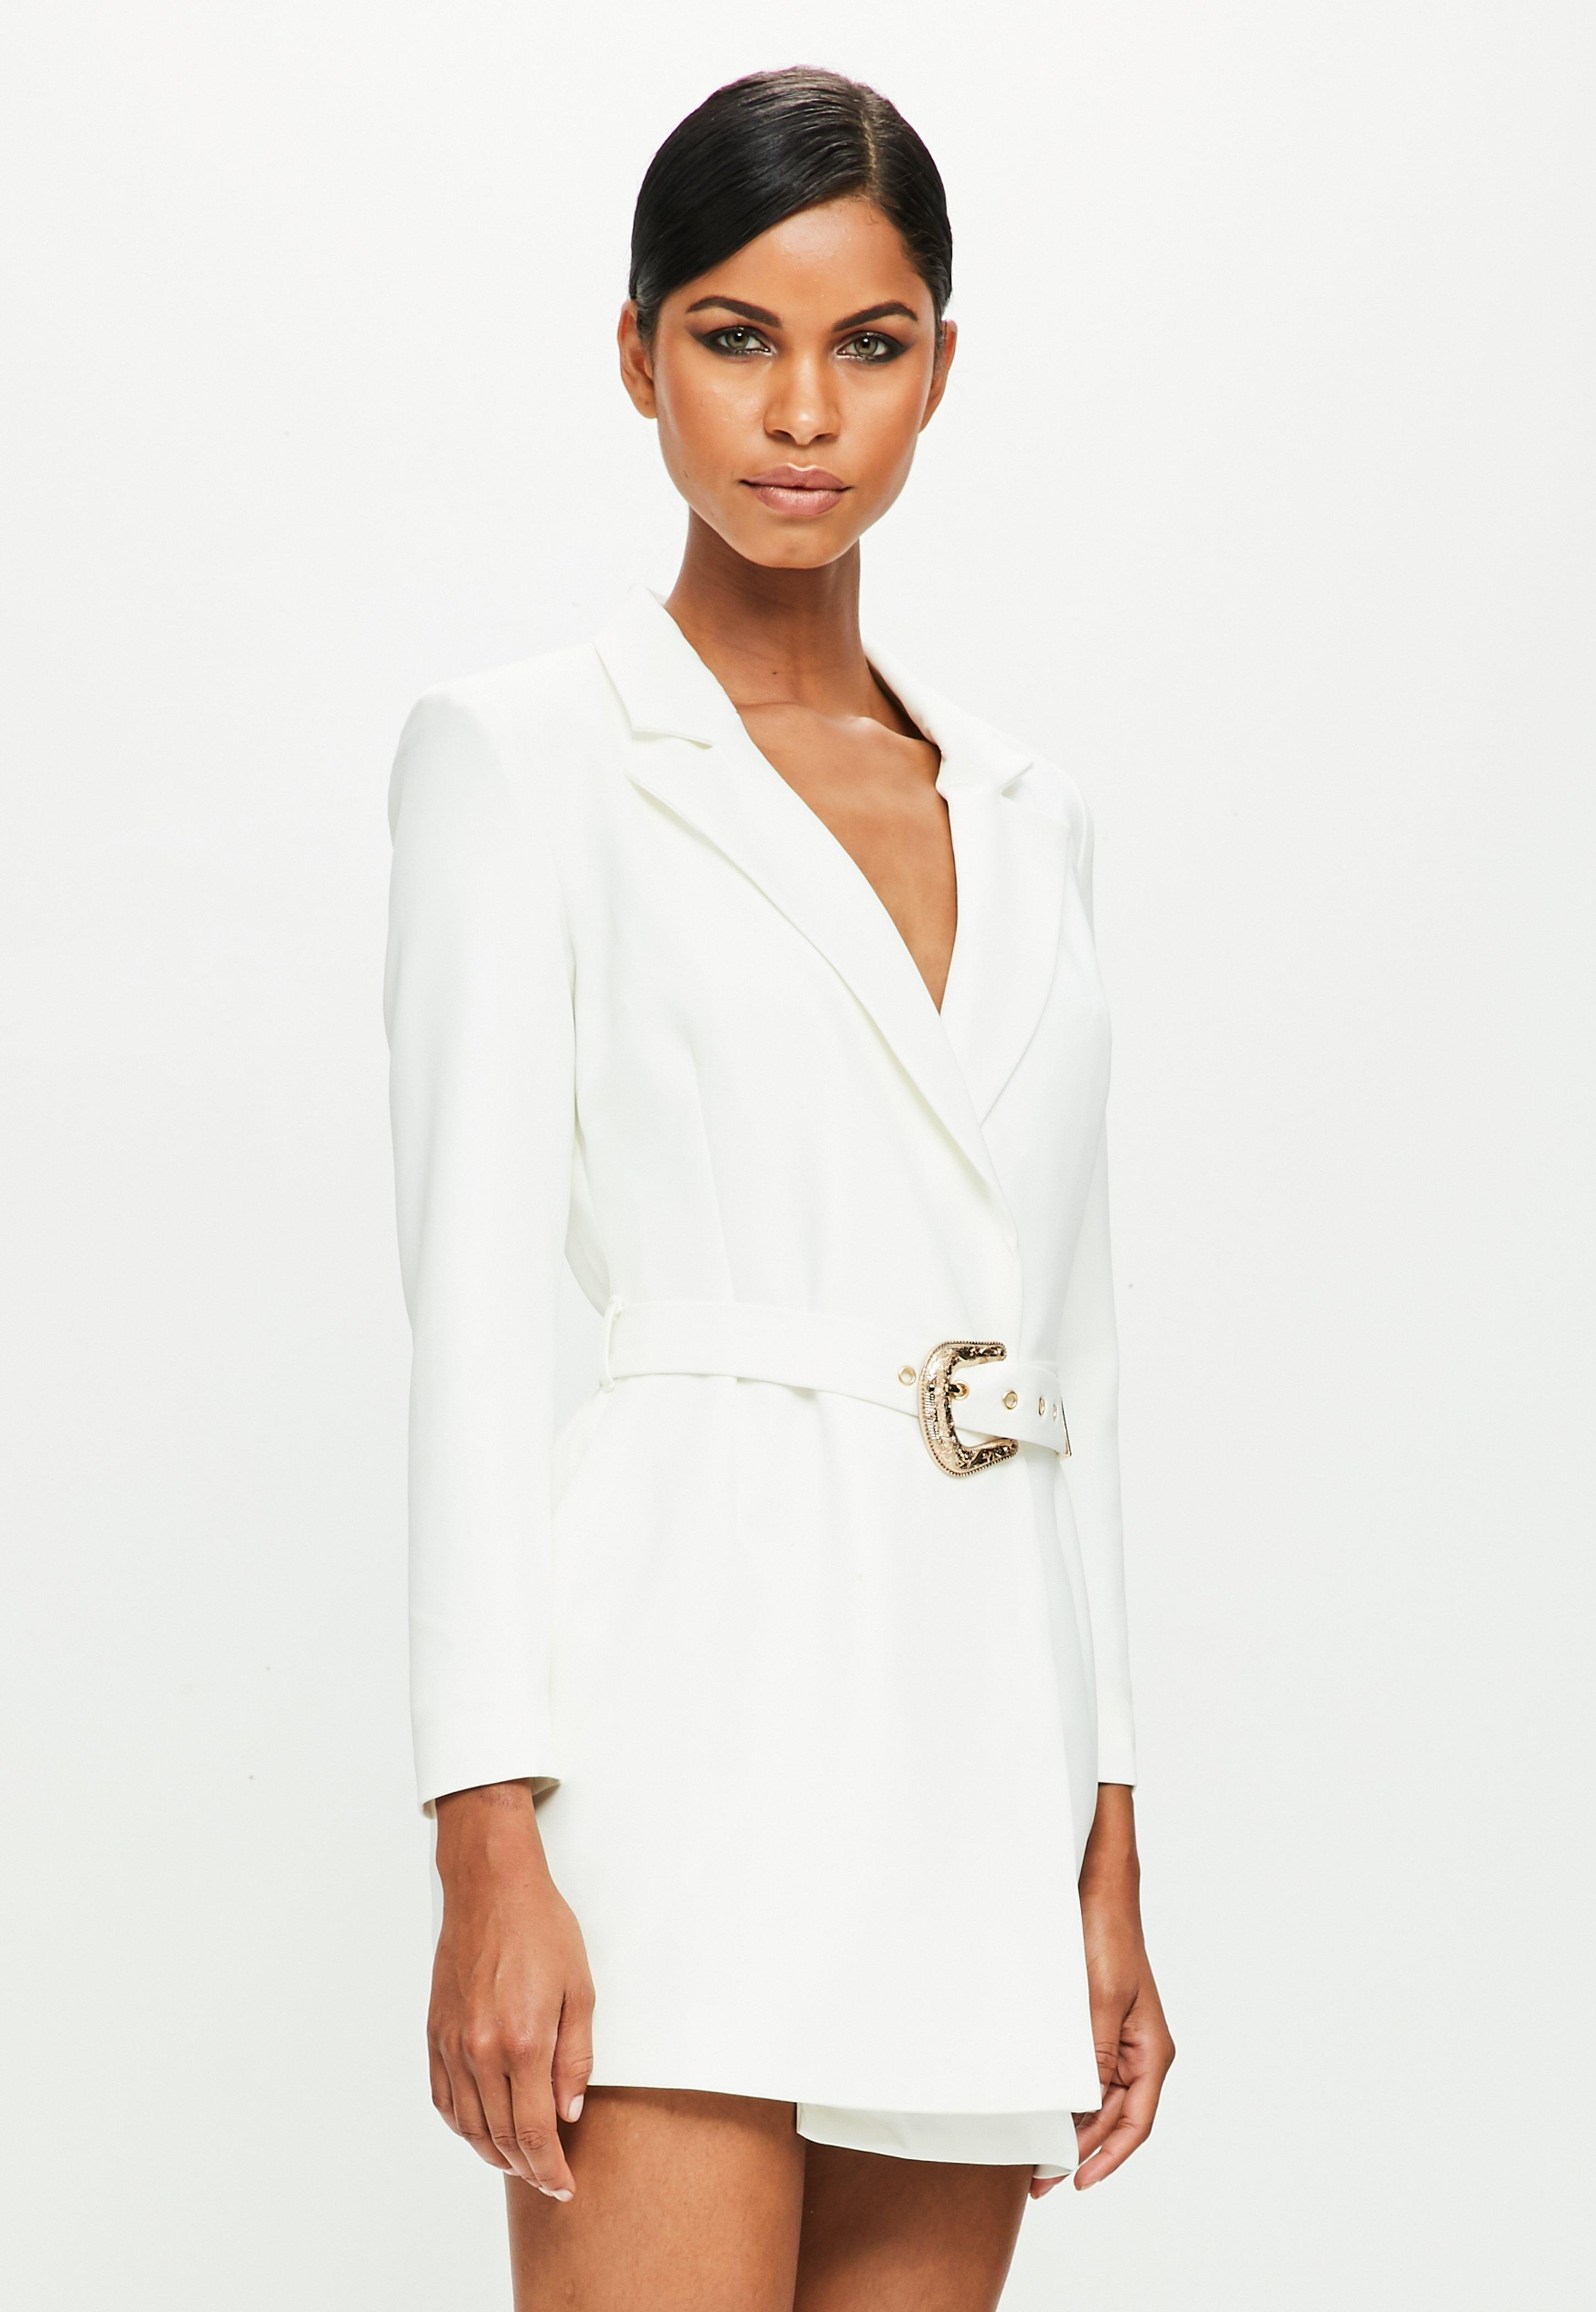 bf046d9c6723 Missguided Peace + Love White Belted Blazer Dress in White - Lyst